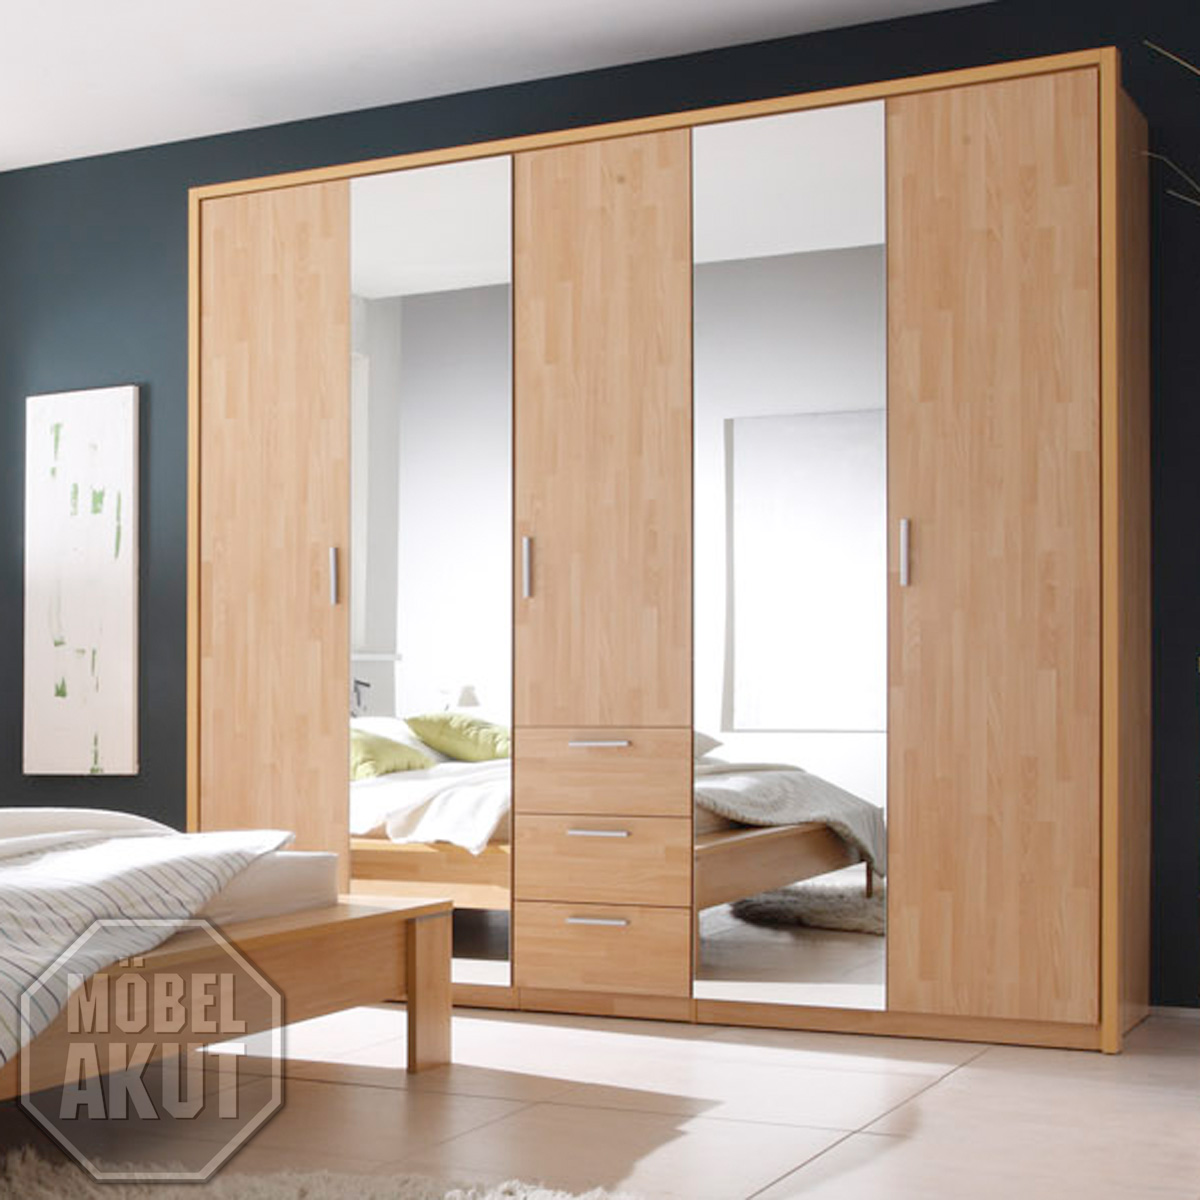 kleiderschrank sidra schrank buche parkett b 229 cm neu. Black Bedroom Furniture Sets. Home Design Ideas